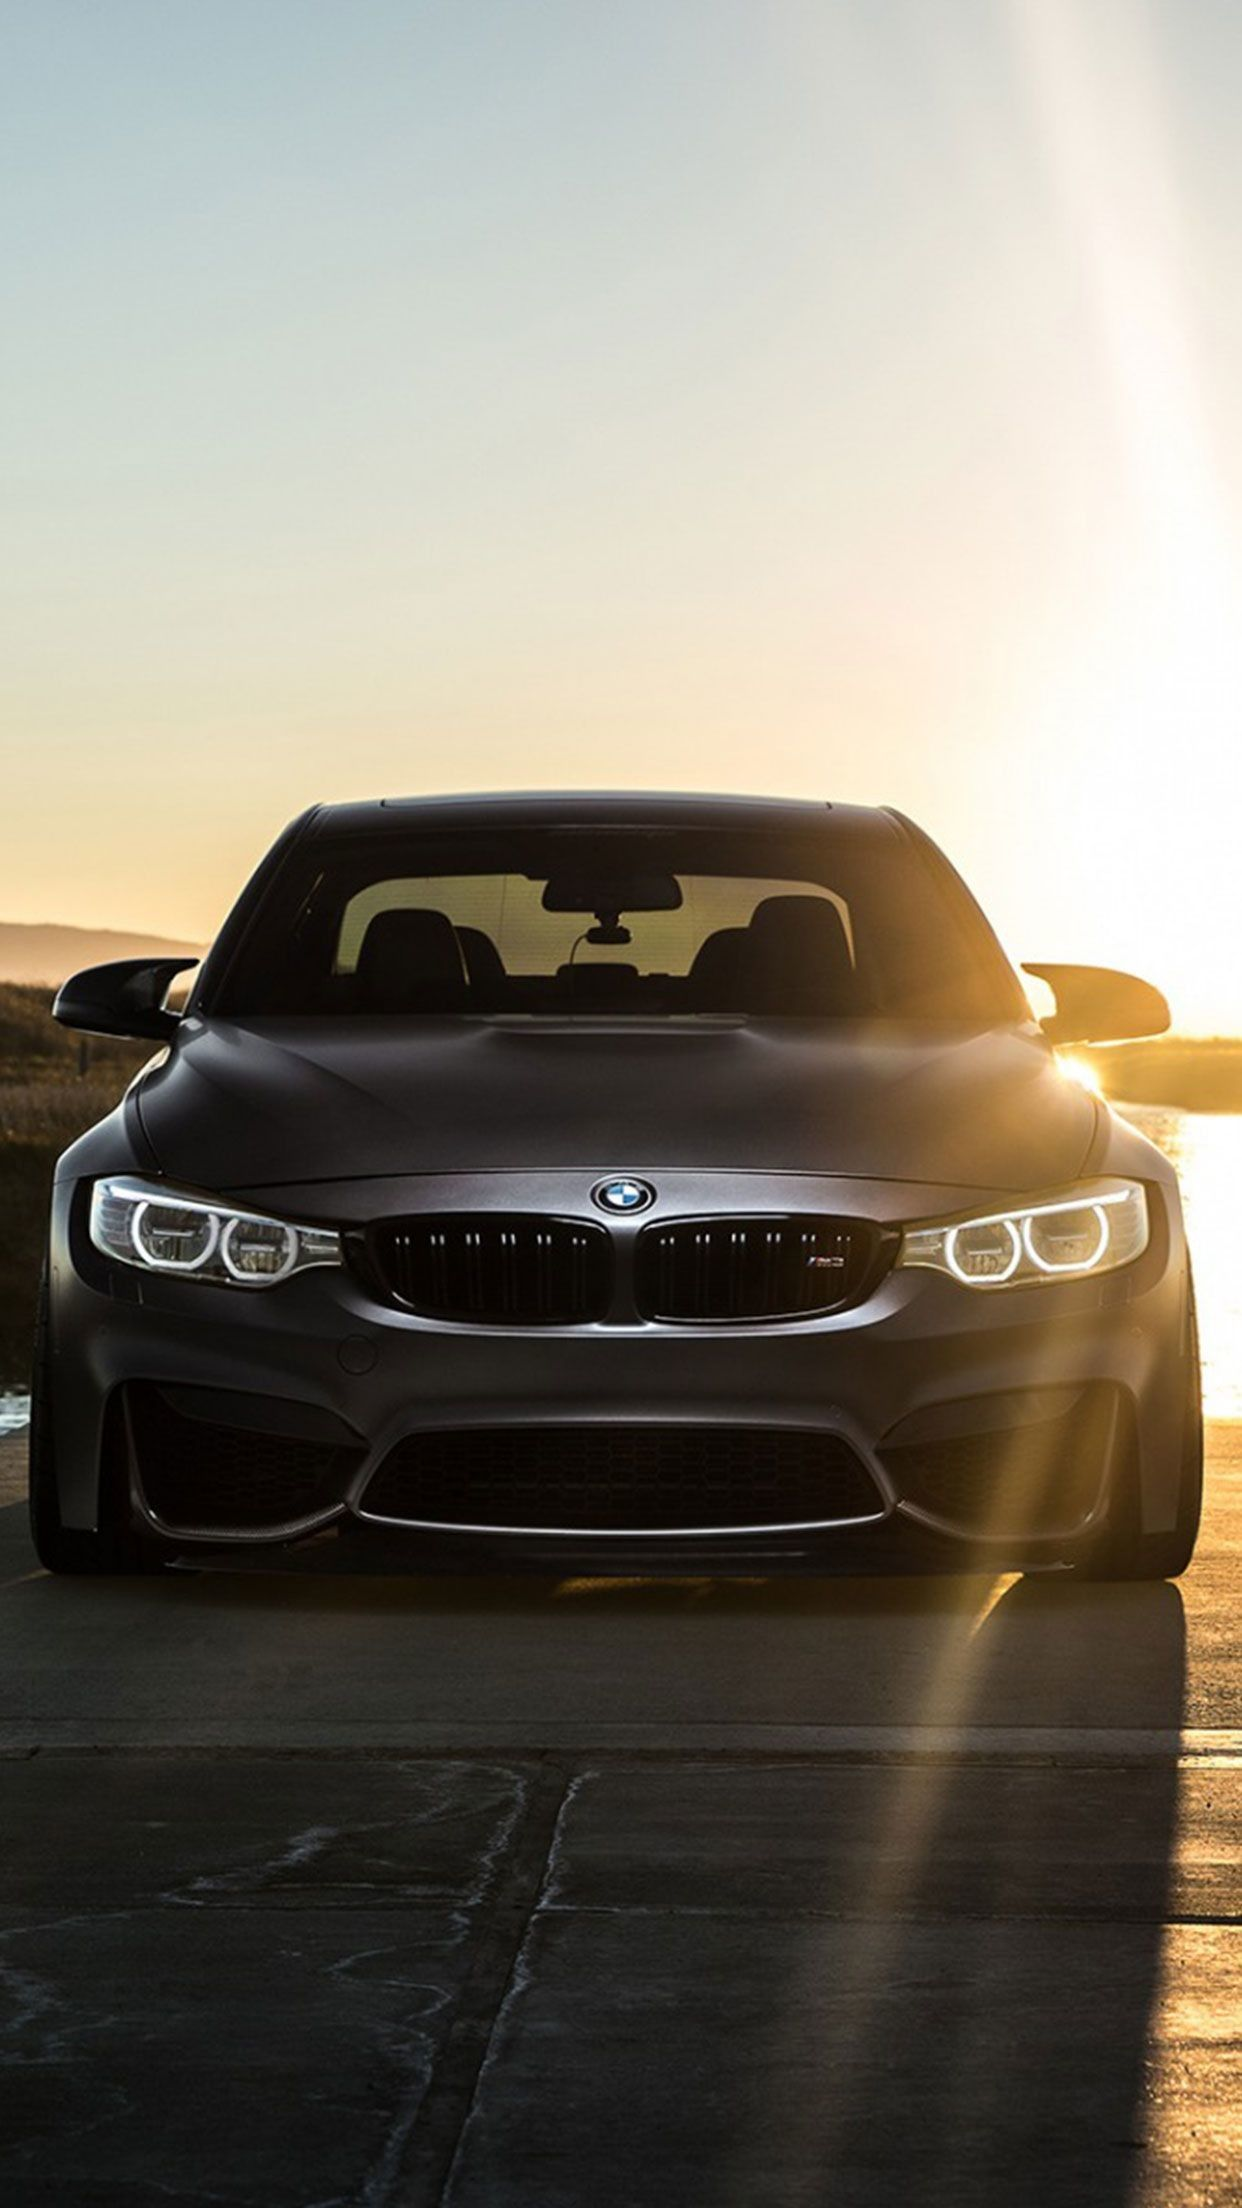 BMW Wallpapers - Page 1 - HD Wallpapers